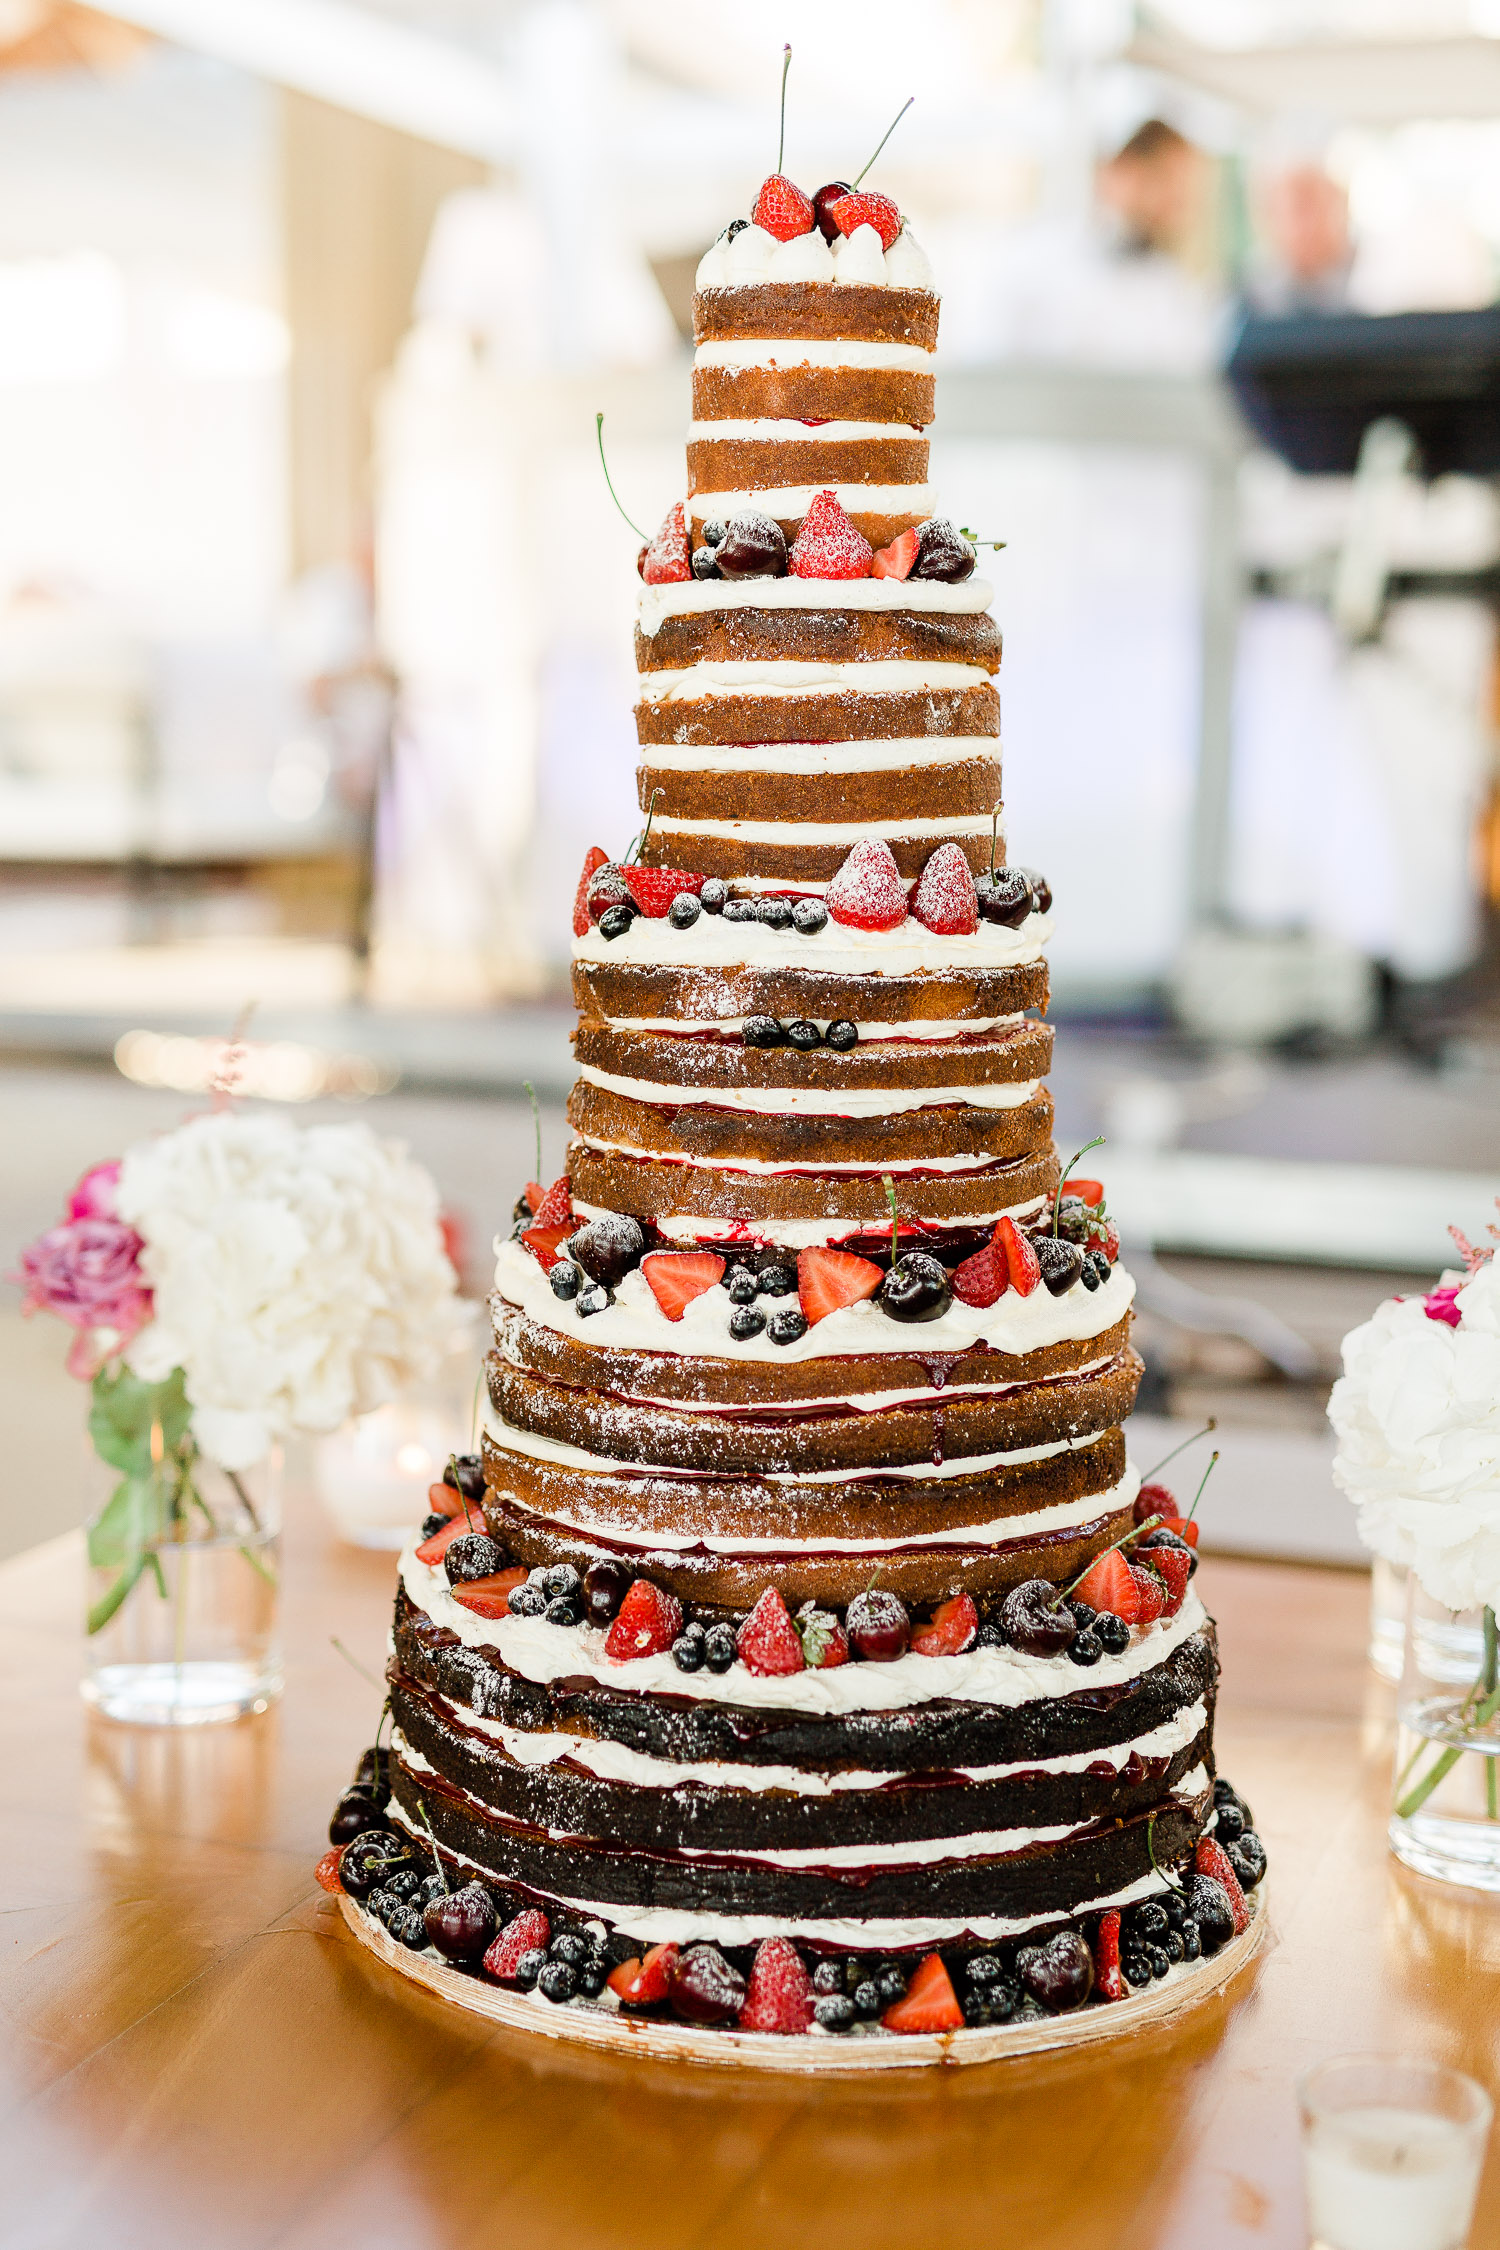 5-tiered, layered, brown-and-white ombré cake.